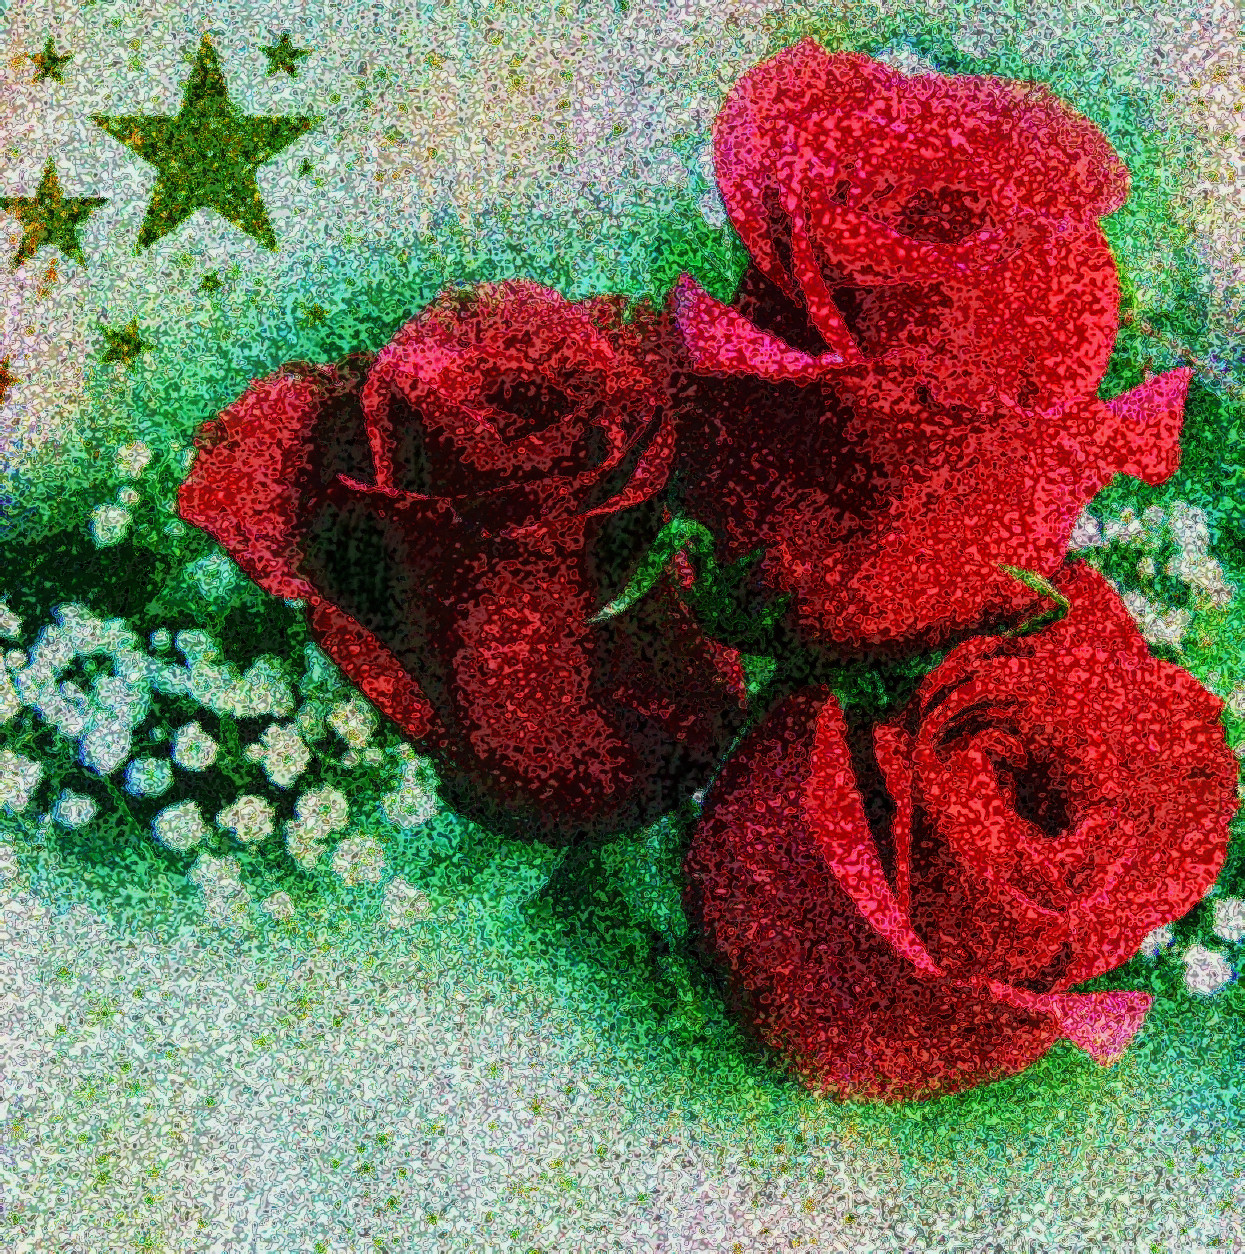 2017-07-14 17-06-11 3roses, using GI preset = Paint2, white balanced, RGB stretched, noise added.jpg